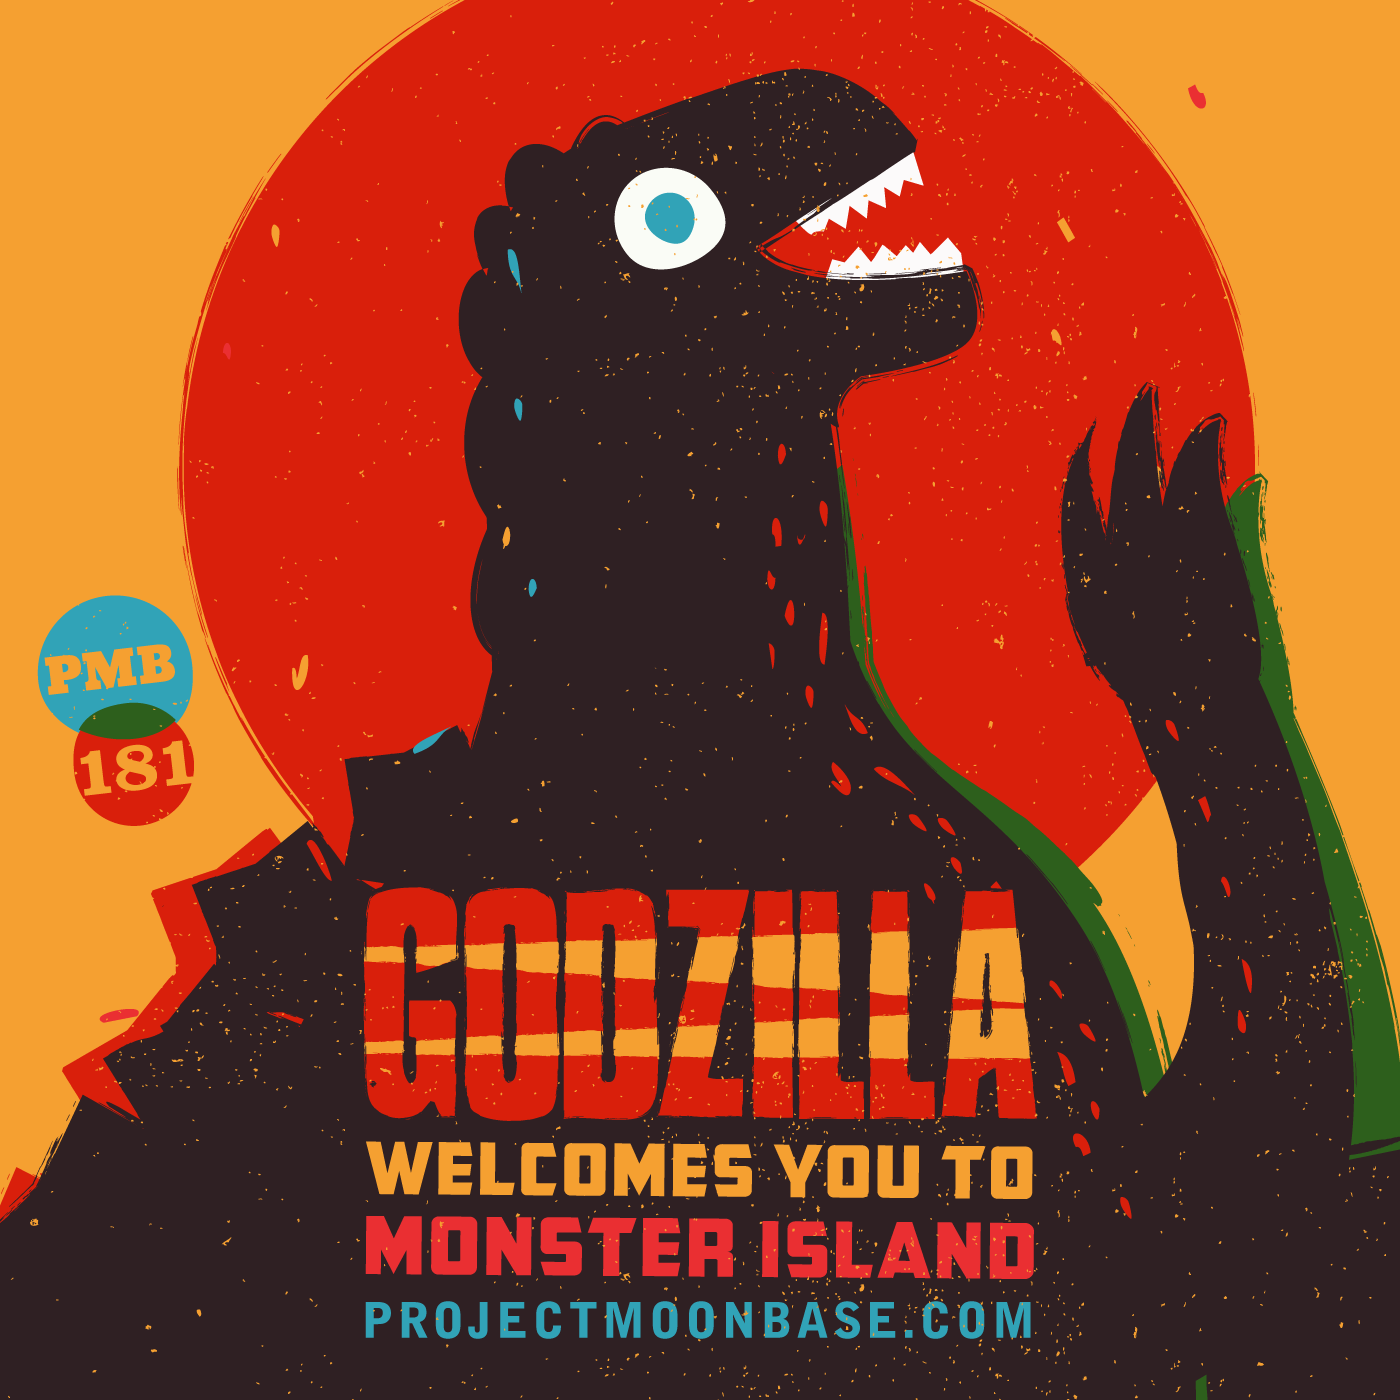 PMB181 Godzilla Welcomes You To Monster Island